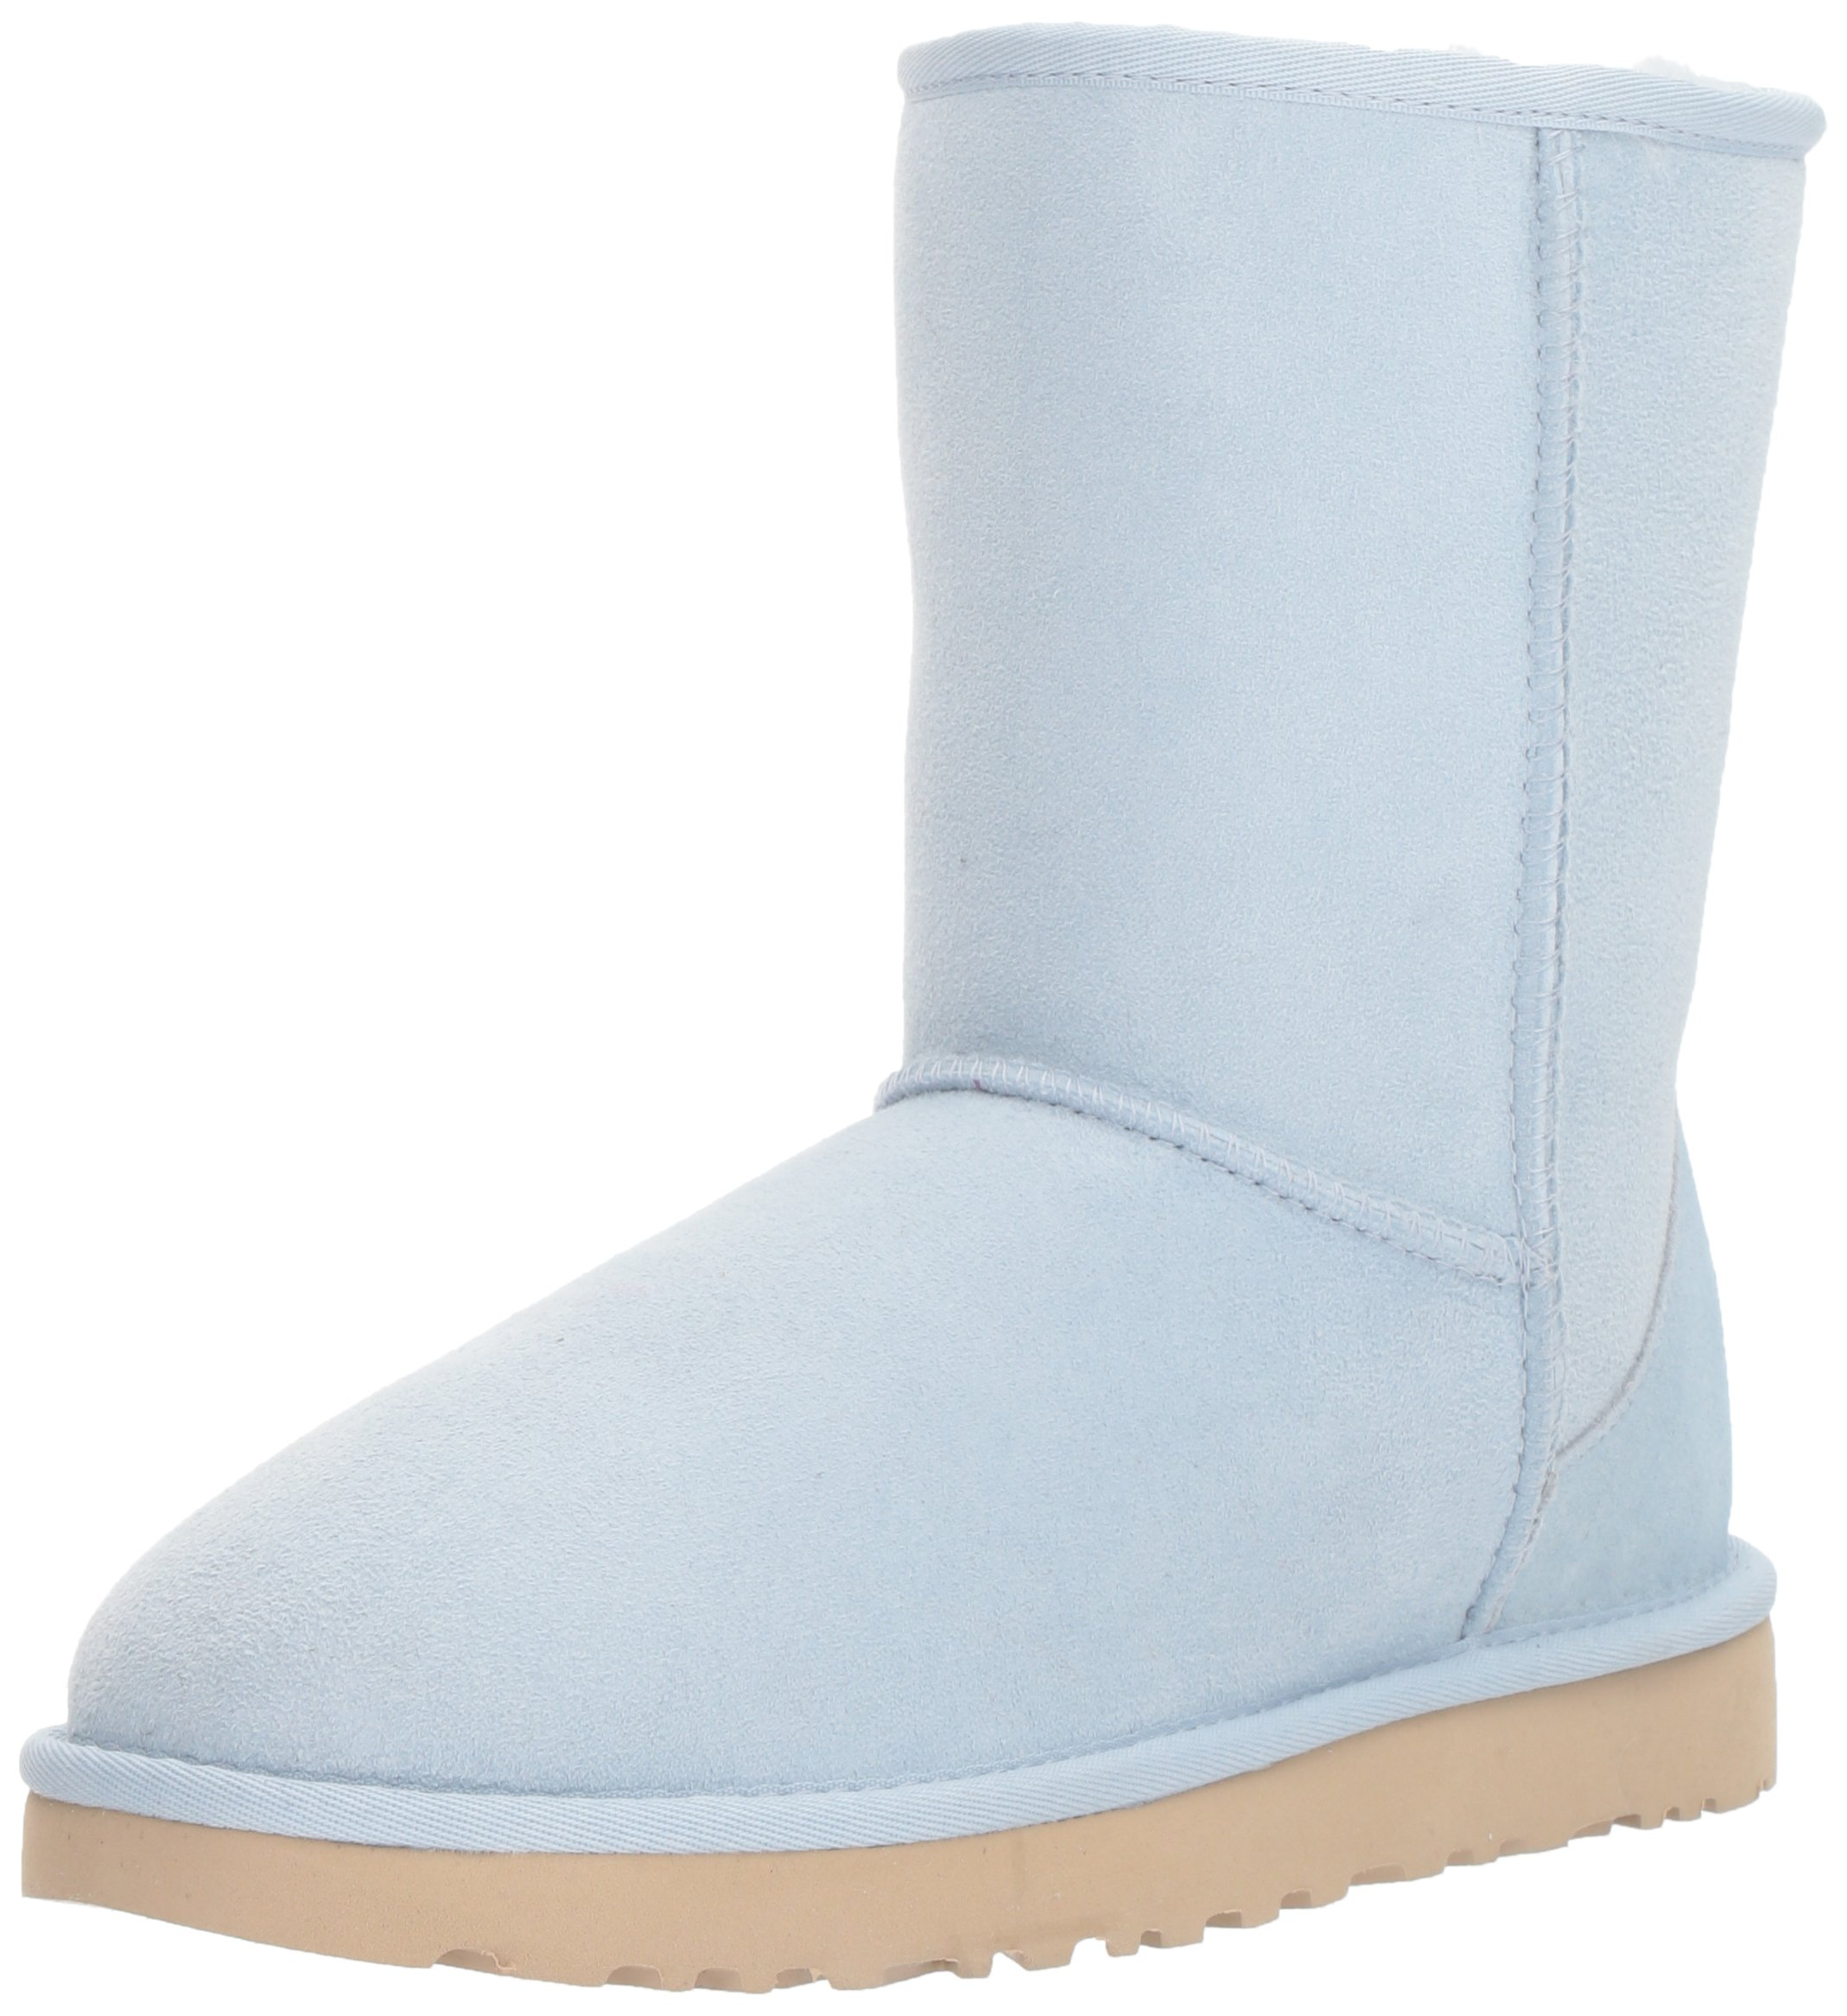 UGG Women's Classic Short II Fashion Boot, Sky Blue, 11 M US